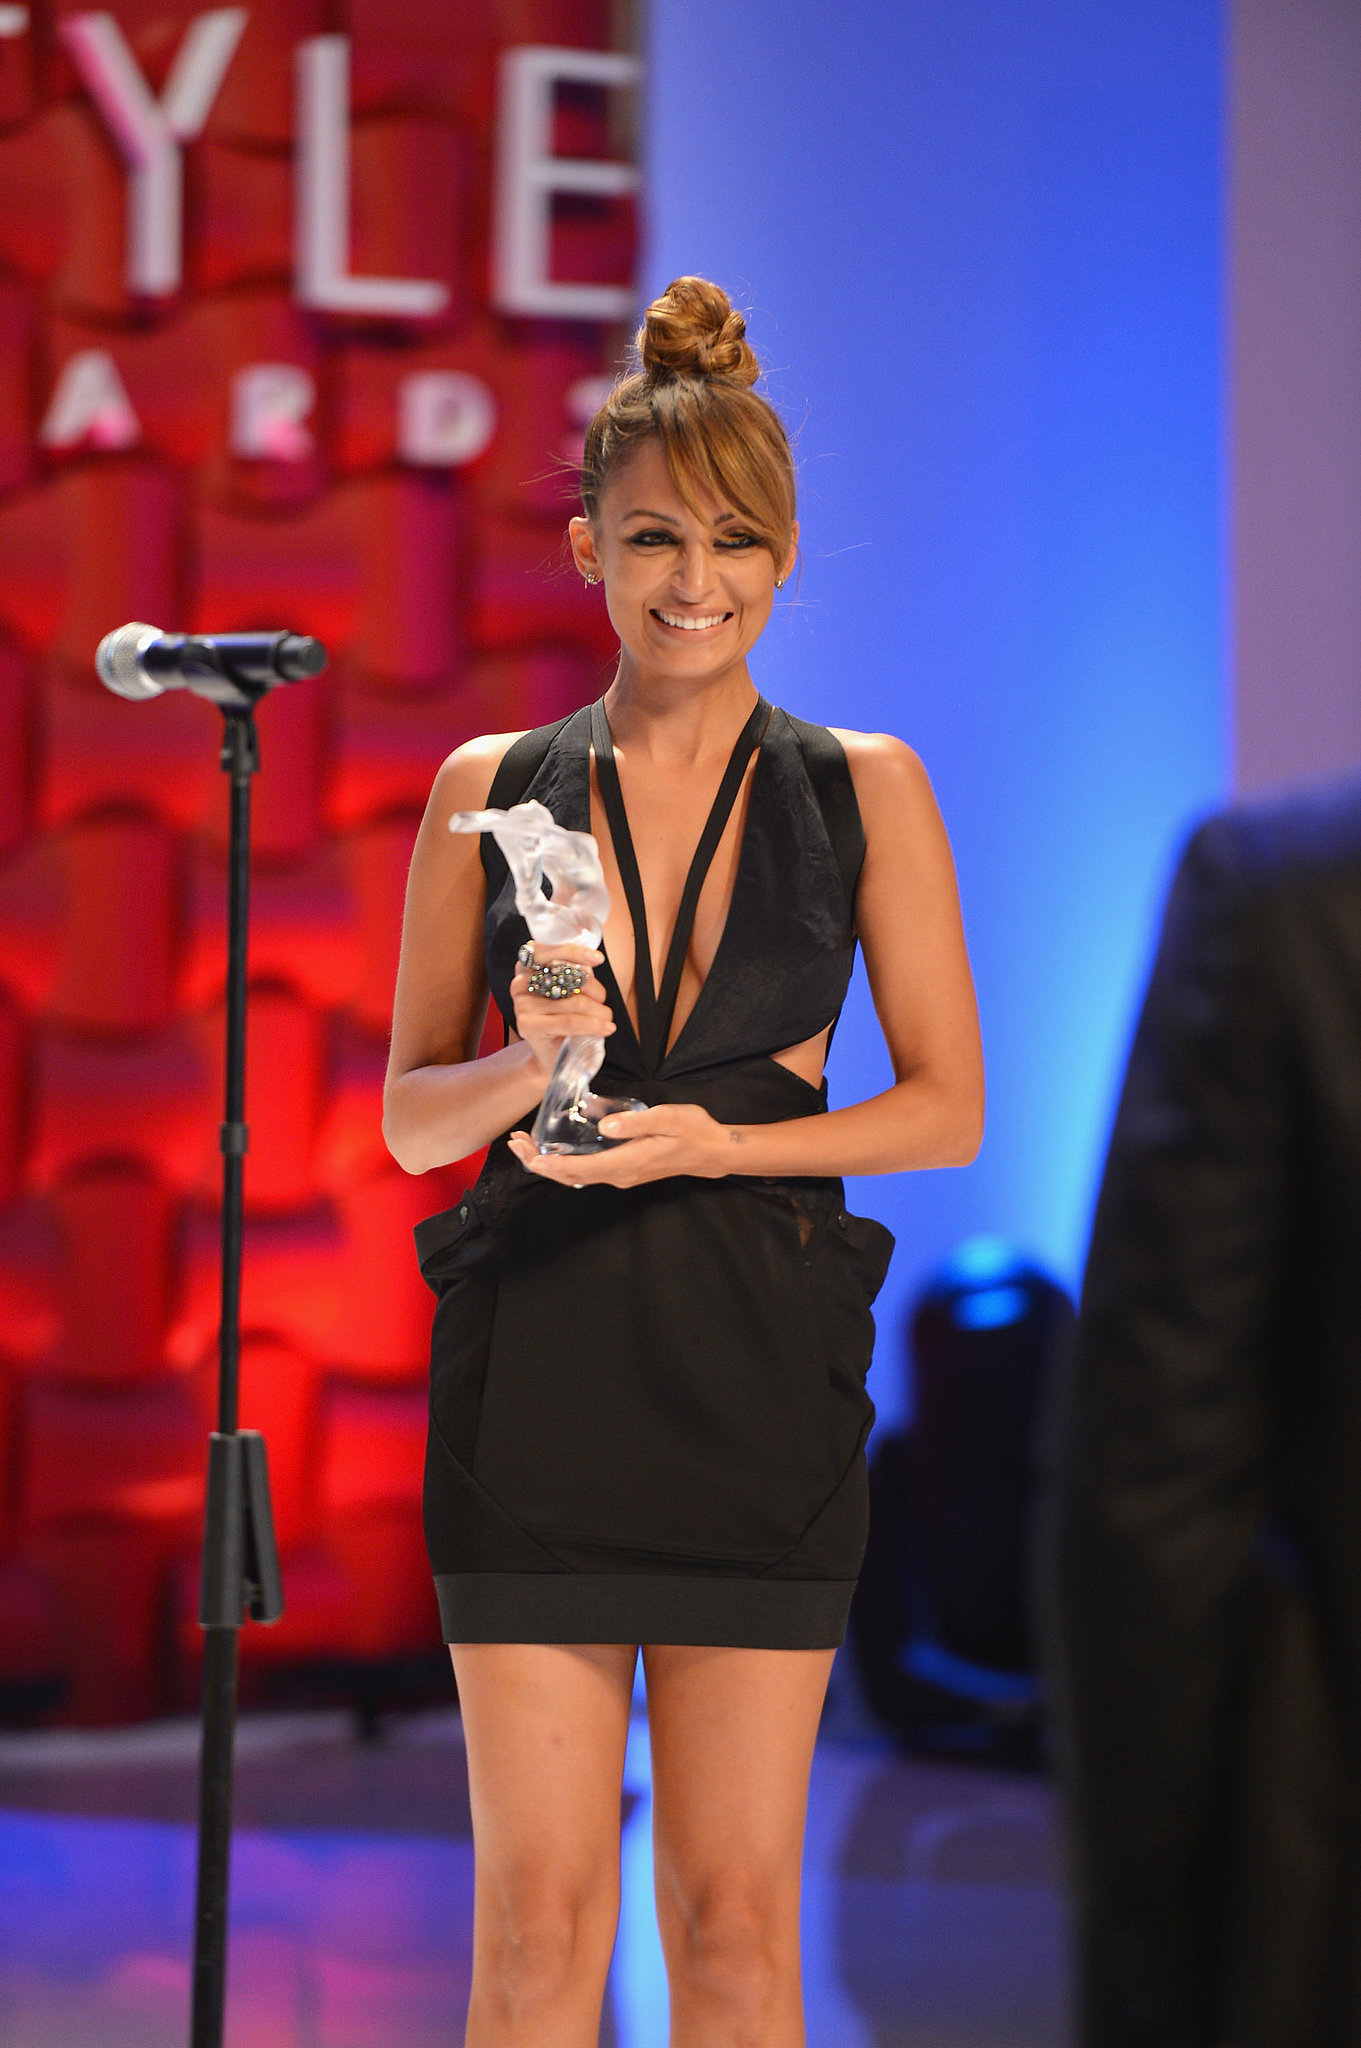 Further cementing her style star status, Nicole was honored at the Style Awards in NYC in September 2012.